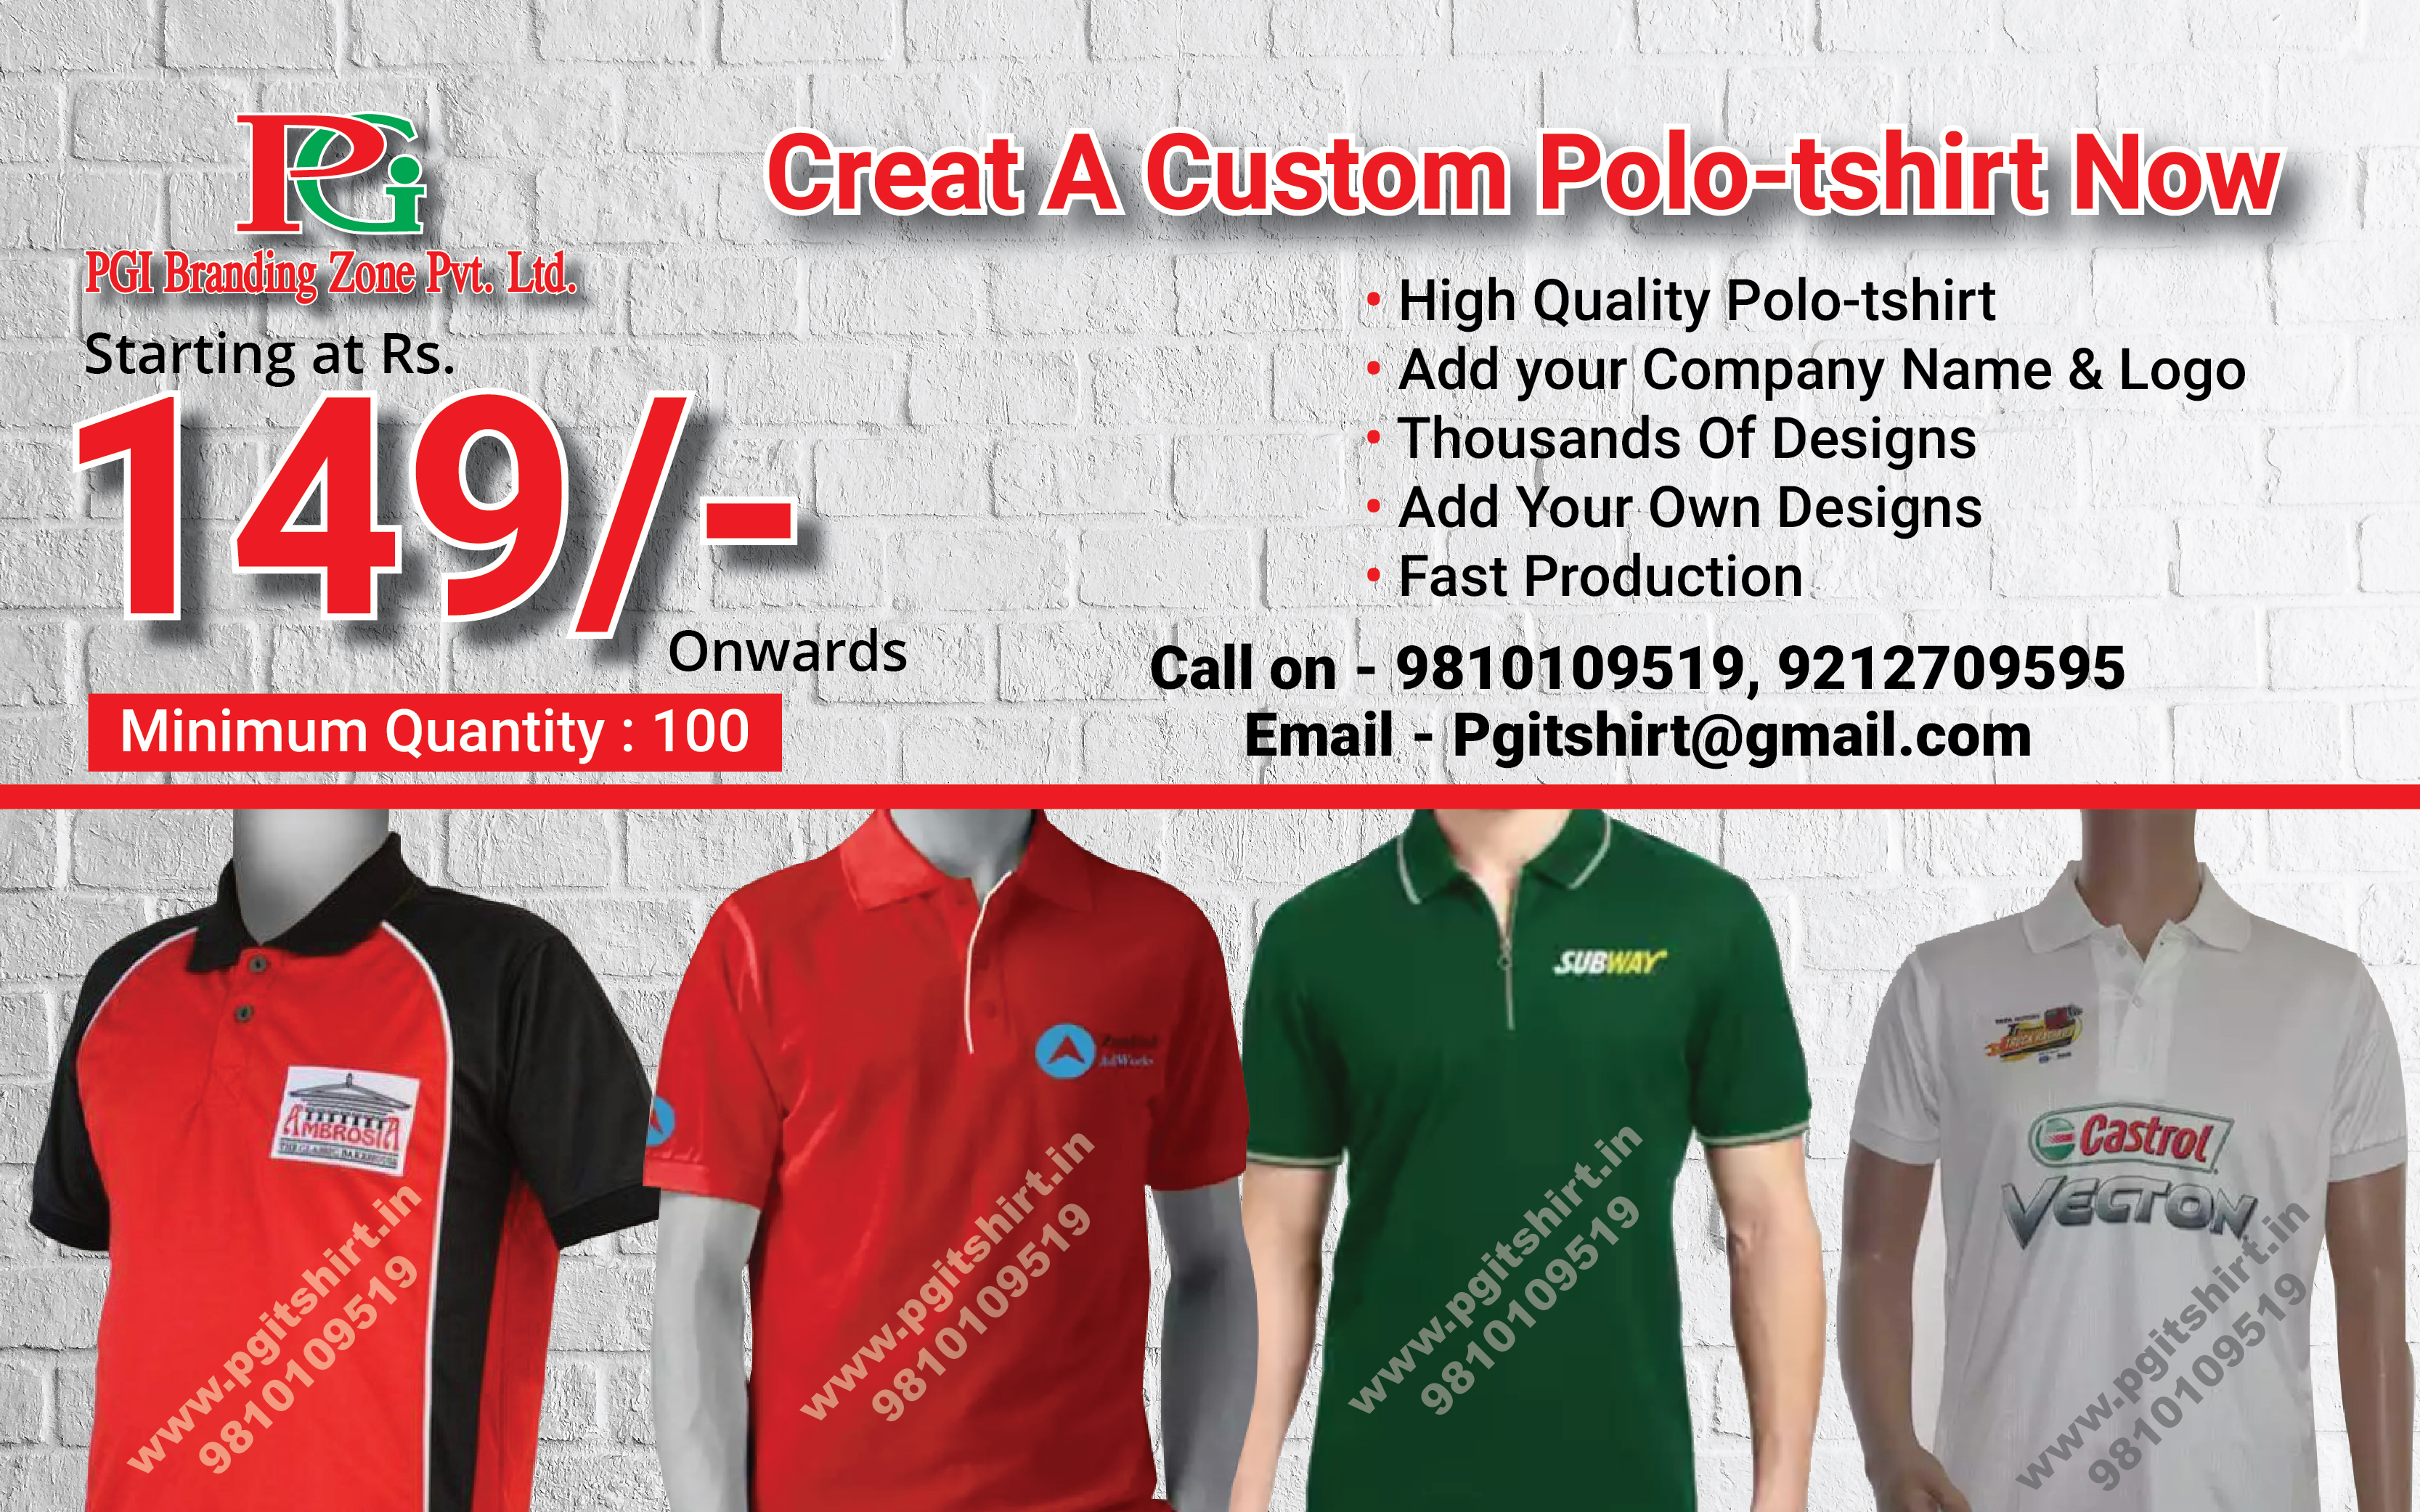 c32318525 Promotional, Corporate, Polo, Cotton T shirts Manufacturers, Suppliers in  Delhi: